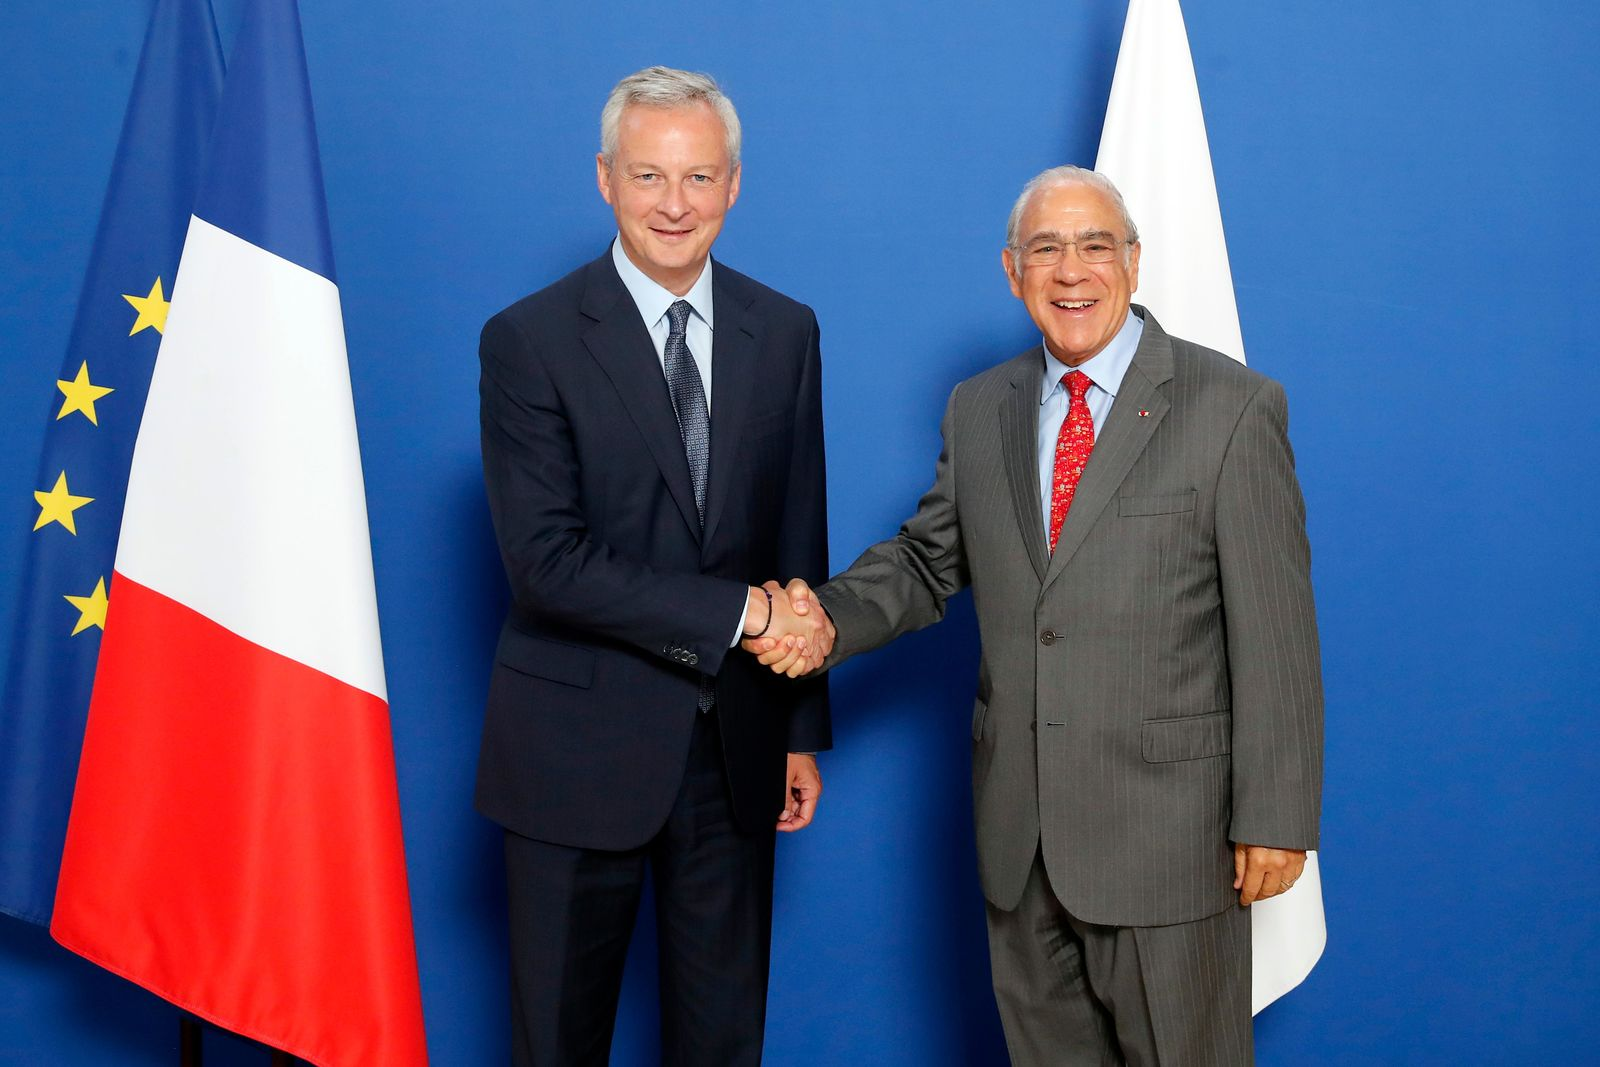 French Finance Minister Bruno Le Maire, left, meets with OECD chief Angel Gurria to plan for international taxes on digital giants like Amazon and Google at Bercy Economy ministry in Paris, Thursday, Aug. 29, 2019. France recently introduced a 3% tax on the companies' French revenues, prompting U.S. President Donald Trump to threaten tariffs on French wine in response.(AP Photo/Francois Mori)